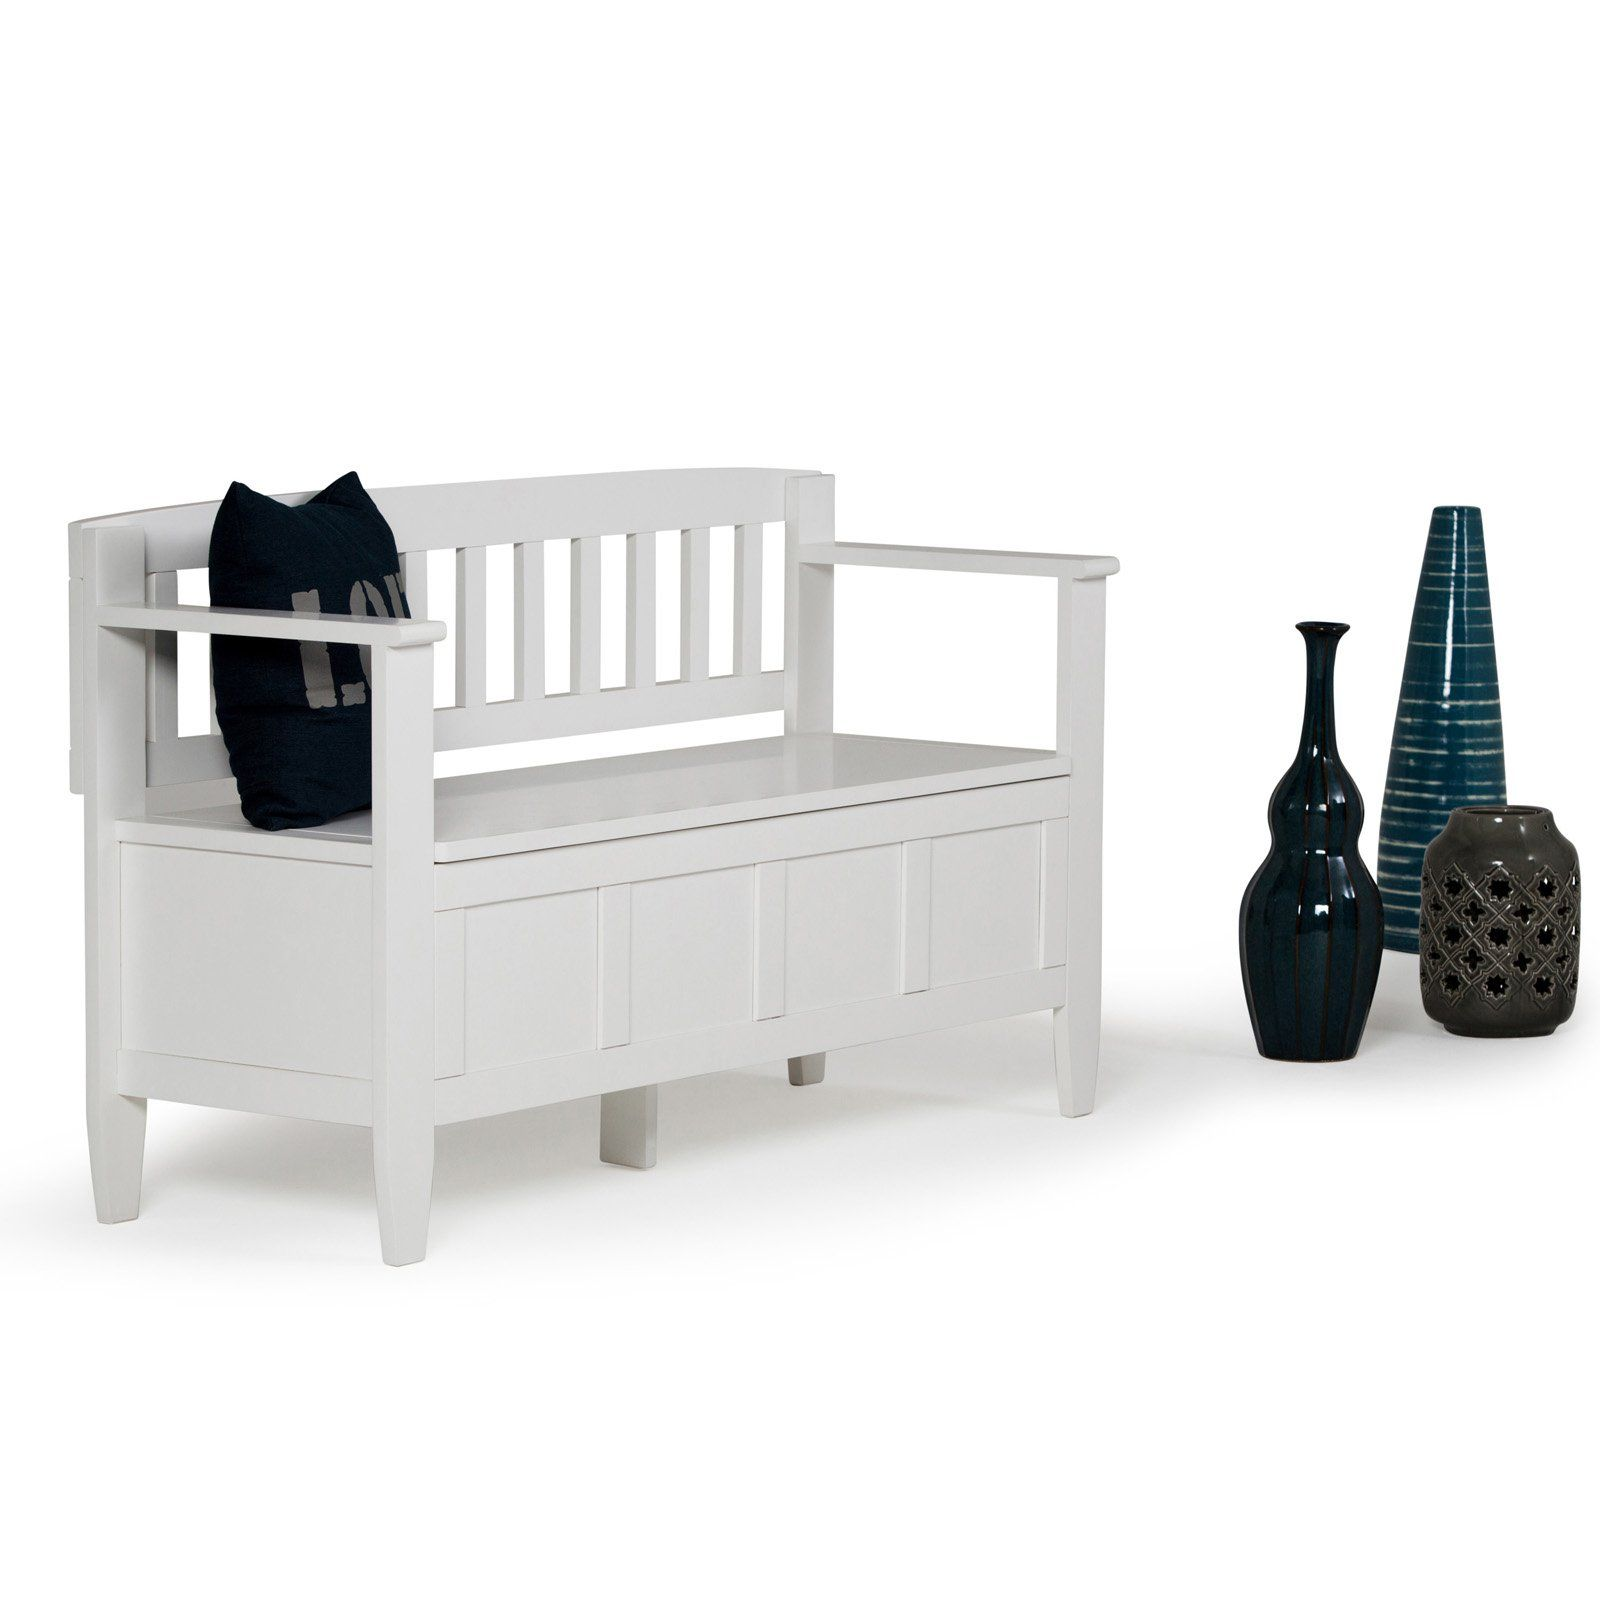 Sensational Simpli Home Brooklyn 4 Ft Entryway Storage Bench White In Gmtry Best Dining Table And Chair Ideas Images Gmtryco